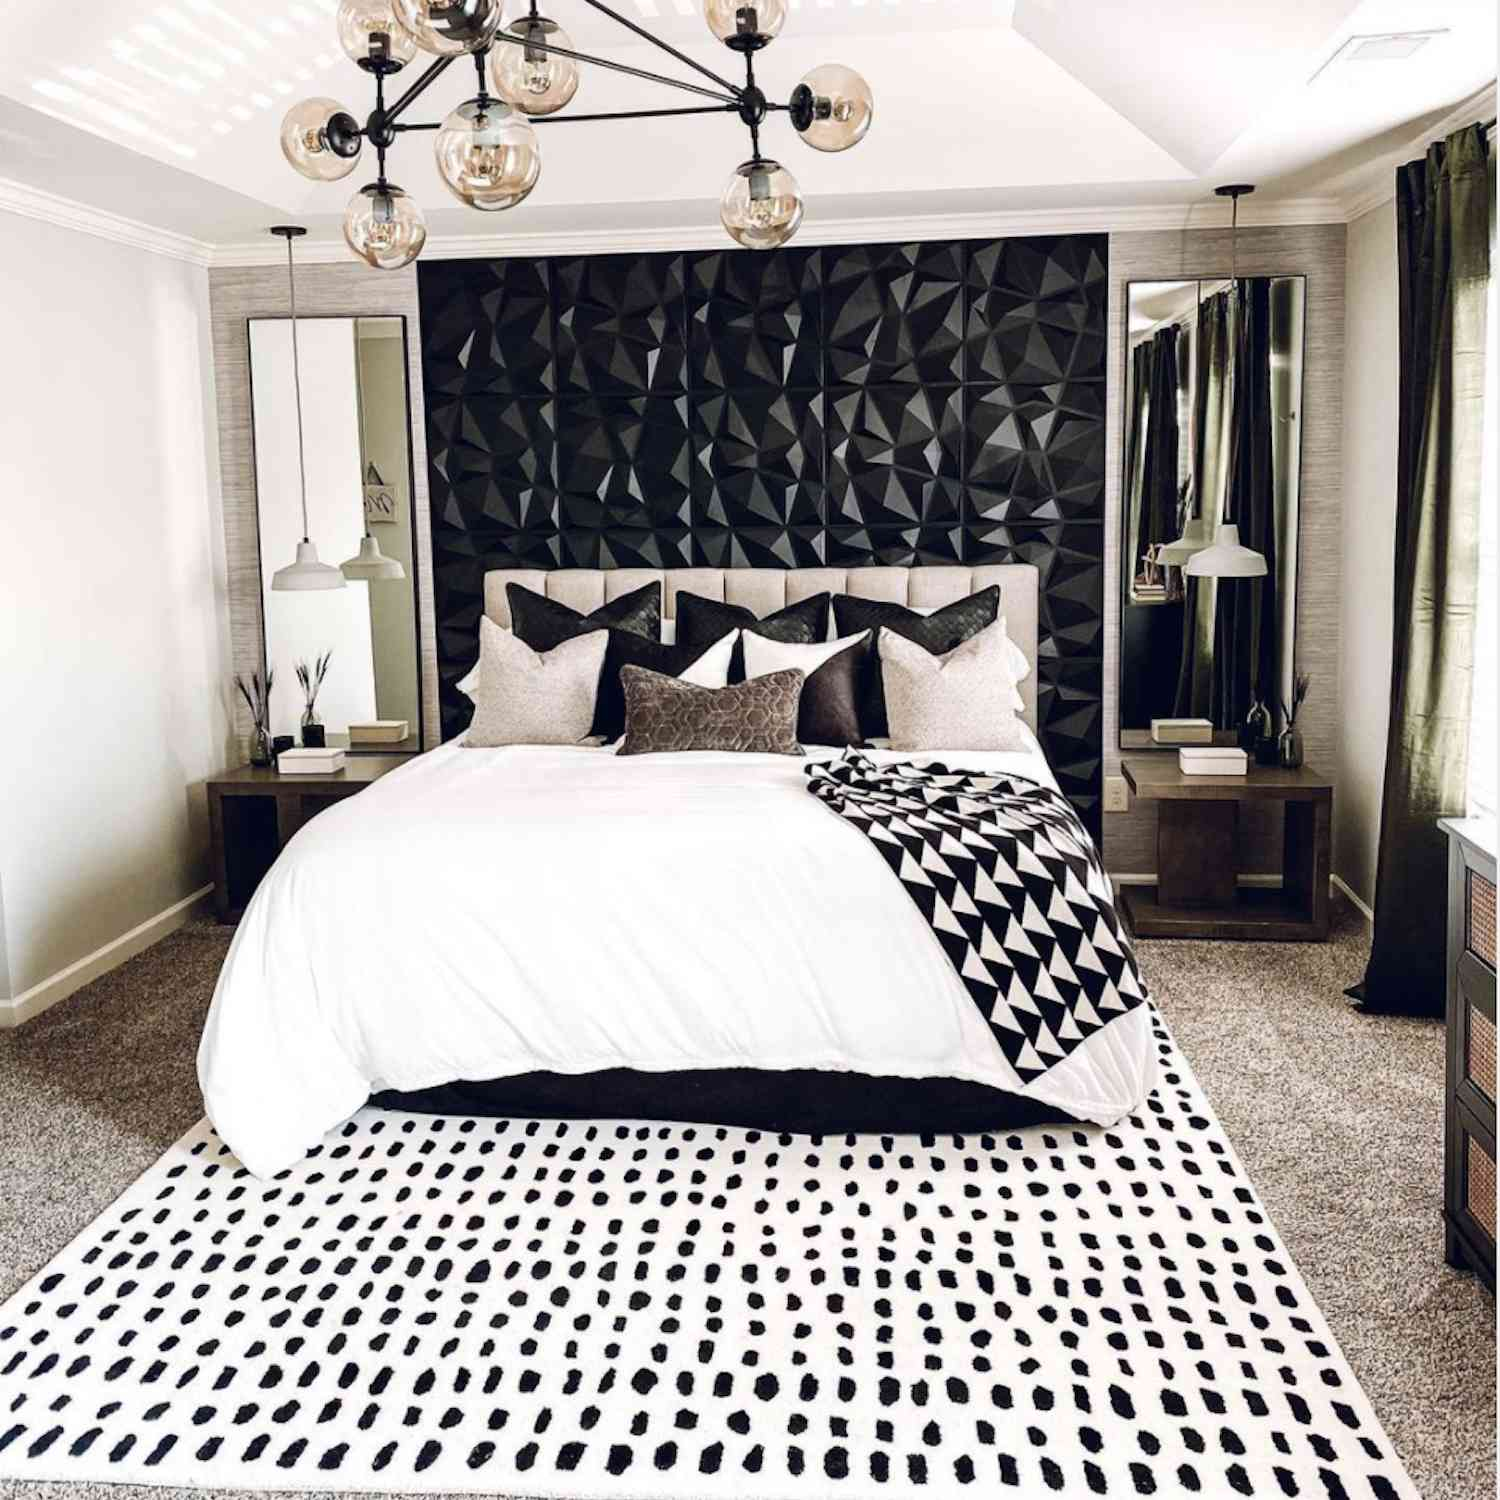 black and white modern bedroom with black geometric textured accent wall